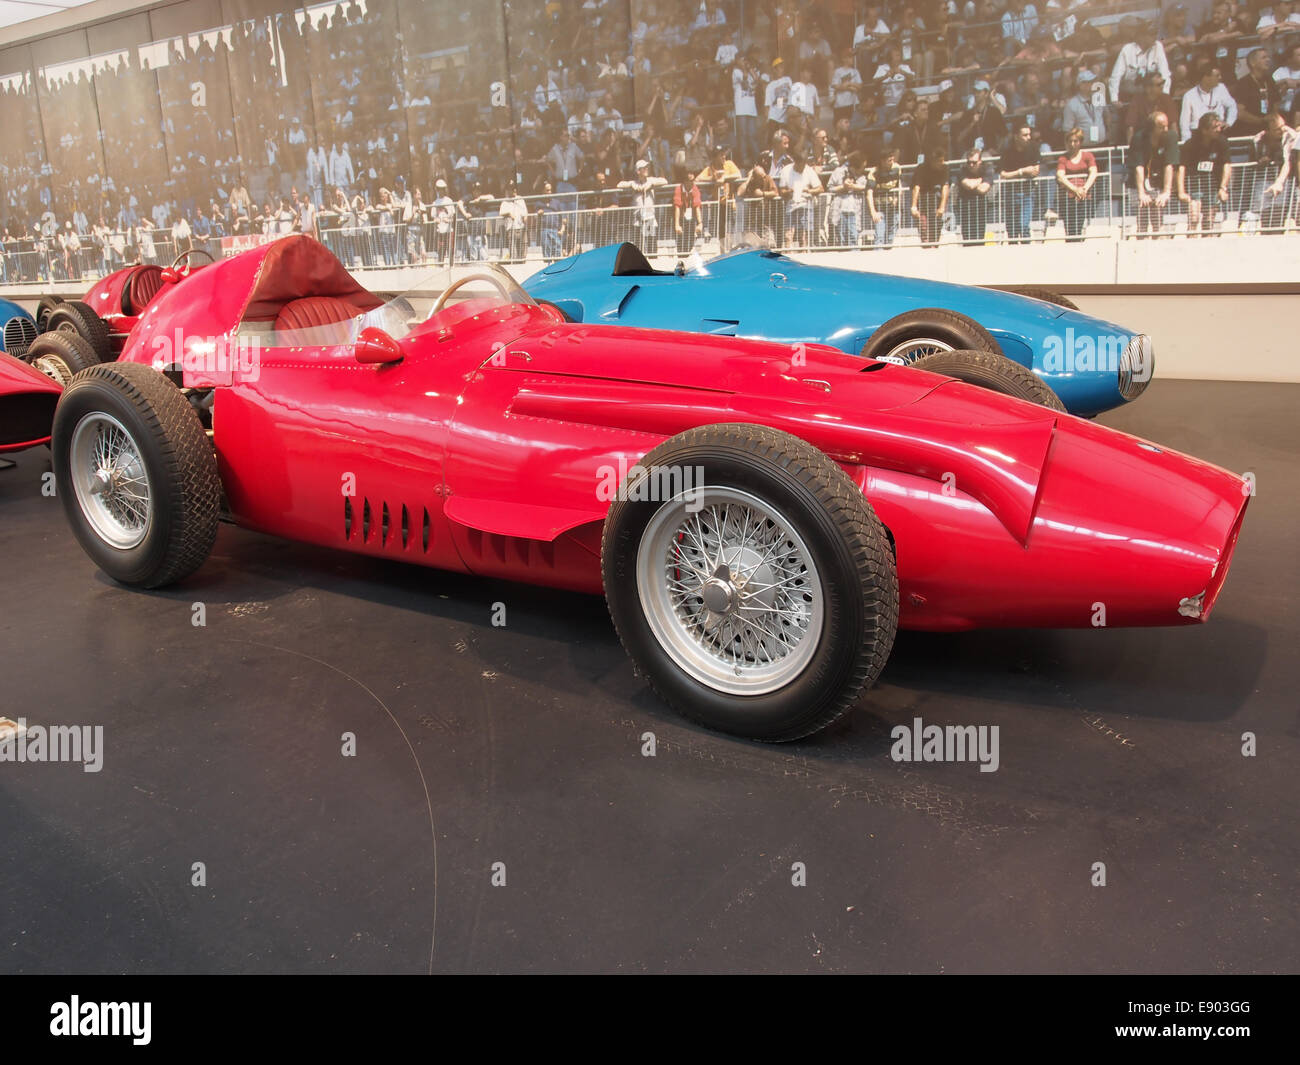 1958 Maserati GP 250, 6 cylinder, 290hp, 2494cm3, 280kmh, photo 2 - Stock Image